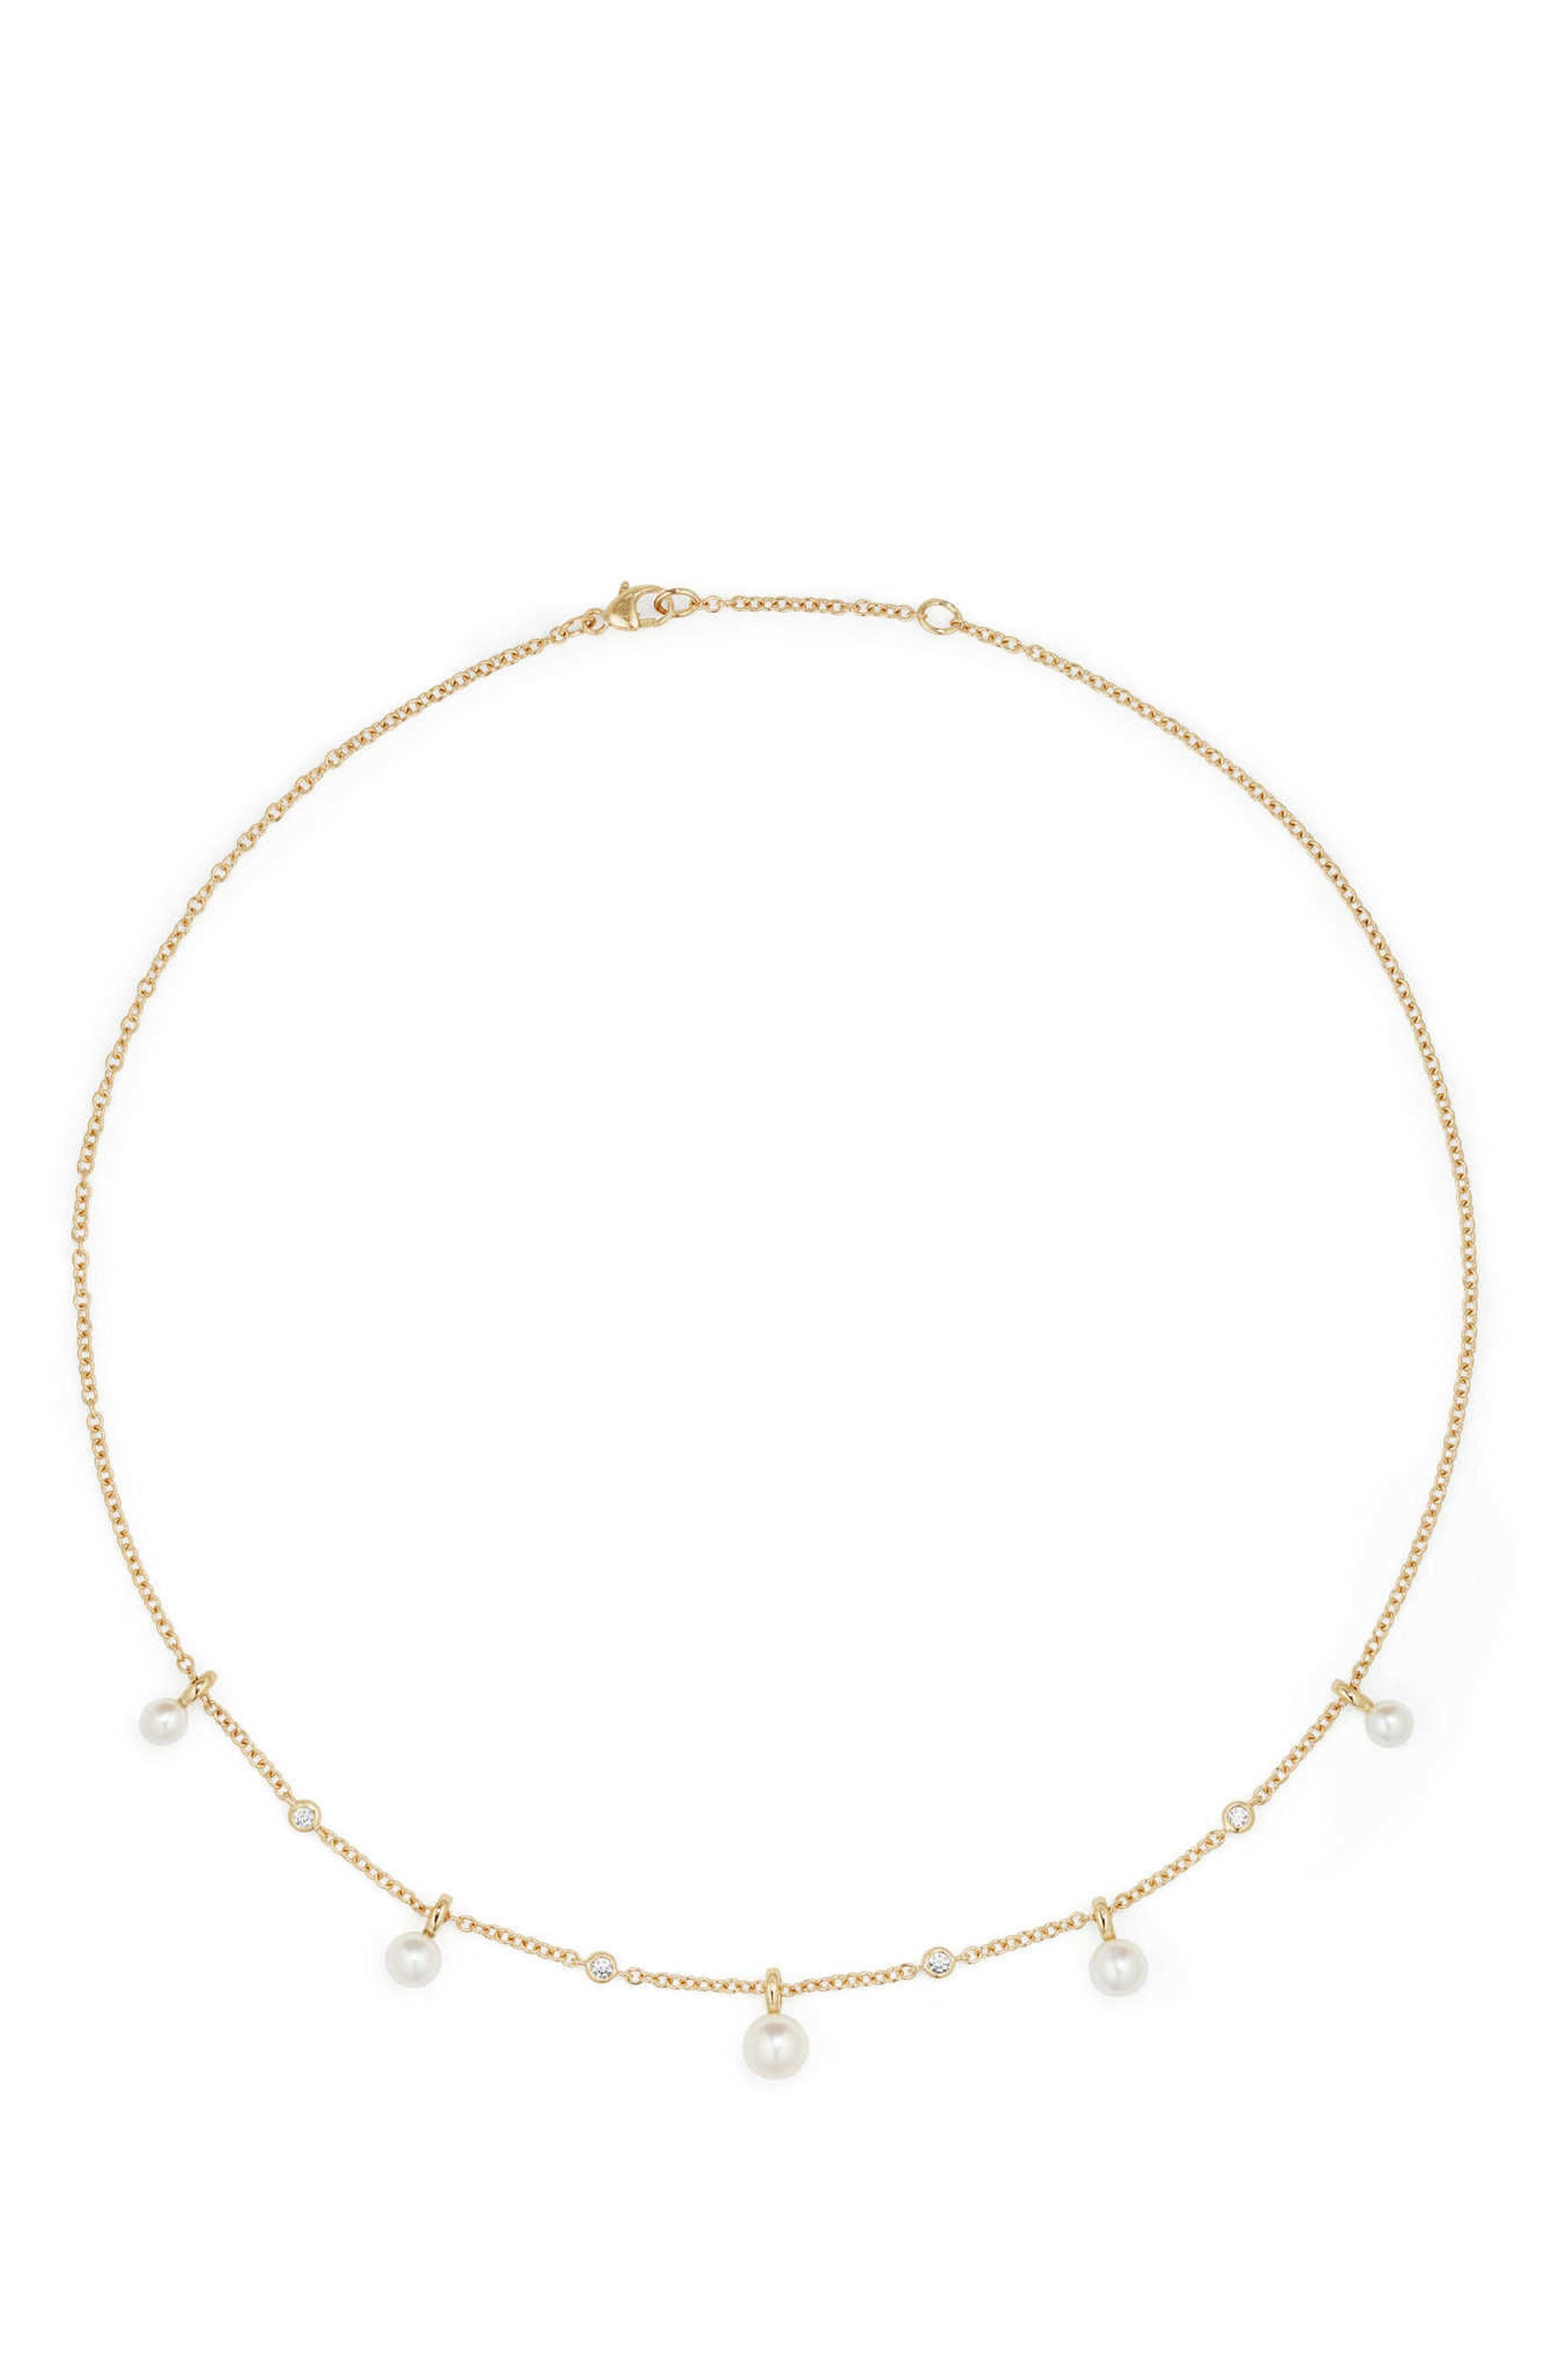 David Yurman Petite Perle Pearl & Diamond Fringe Necklace in 18k Gold